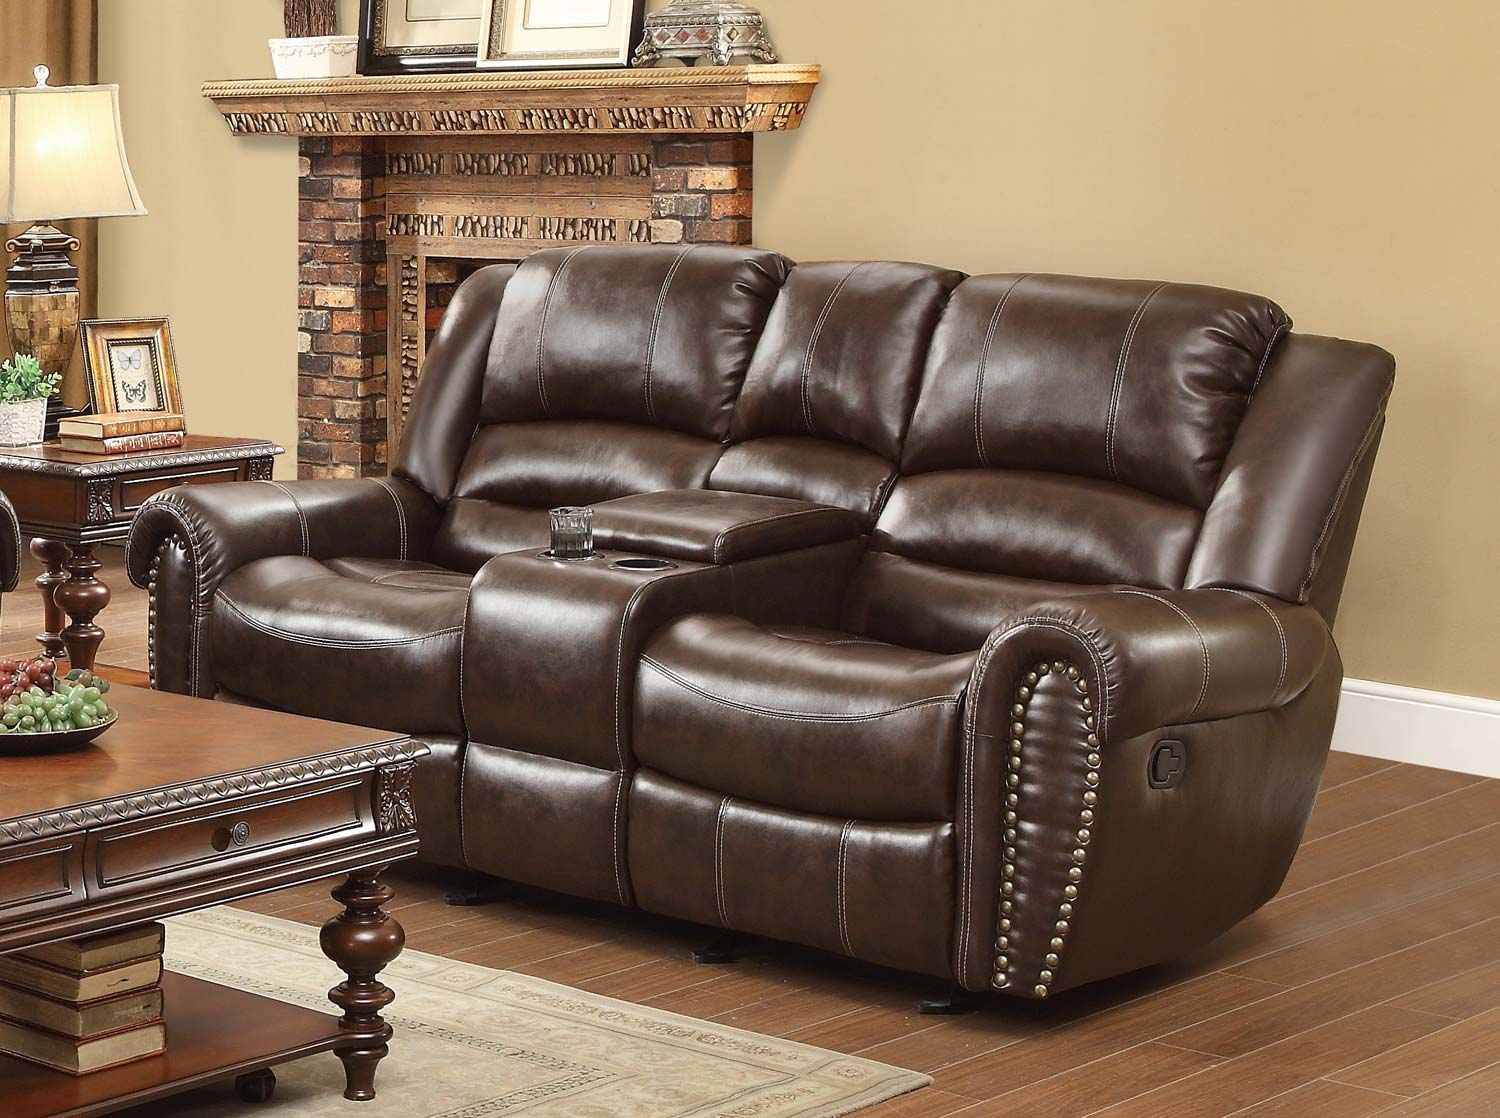 Homelegance Center Hill Reclining Sofa Set - Dark Brown Bonded Leather